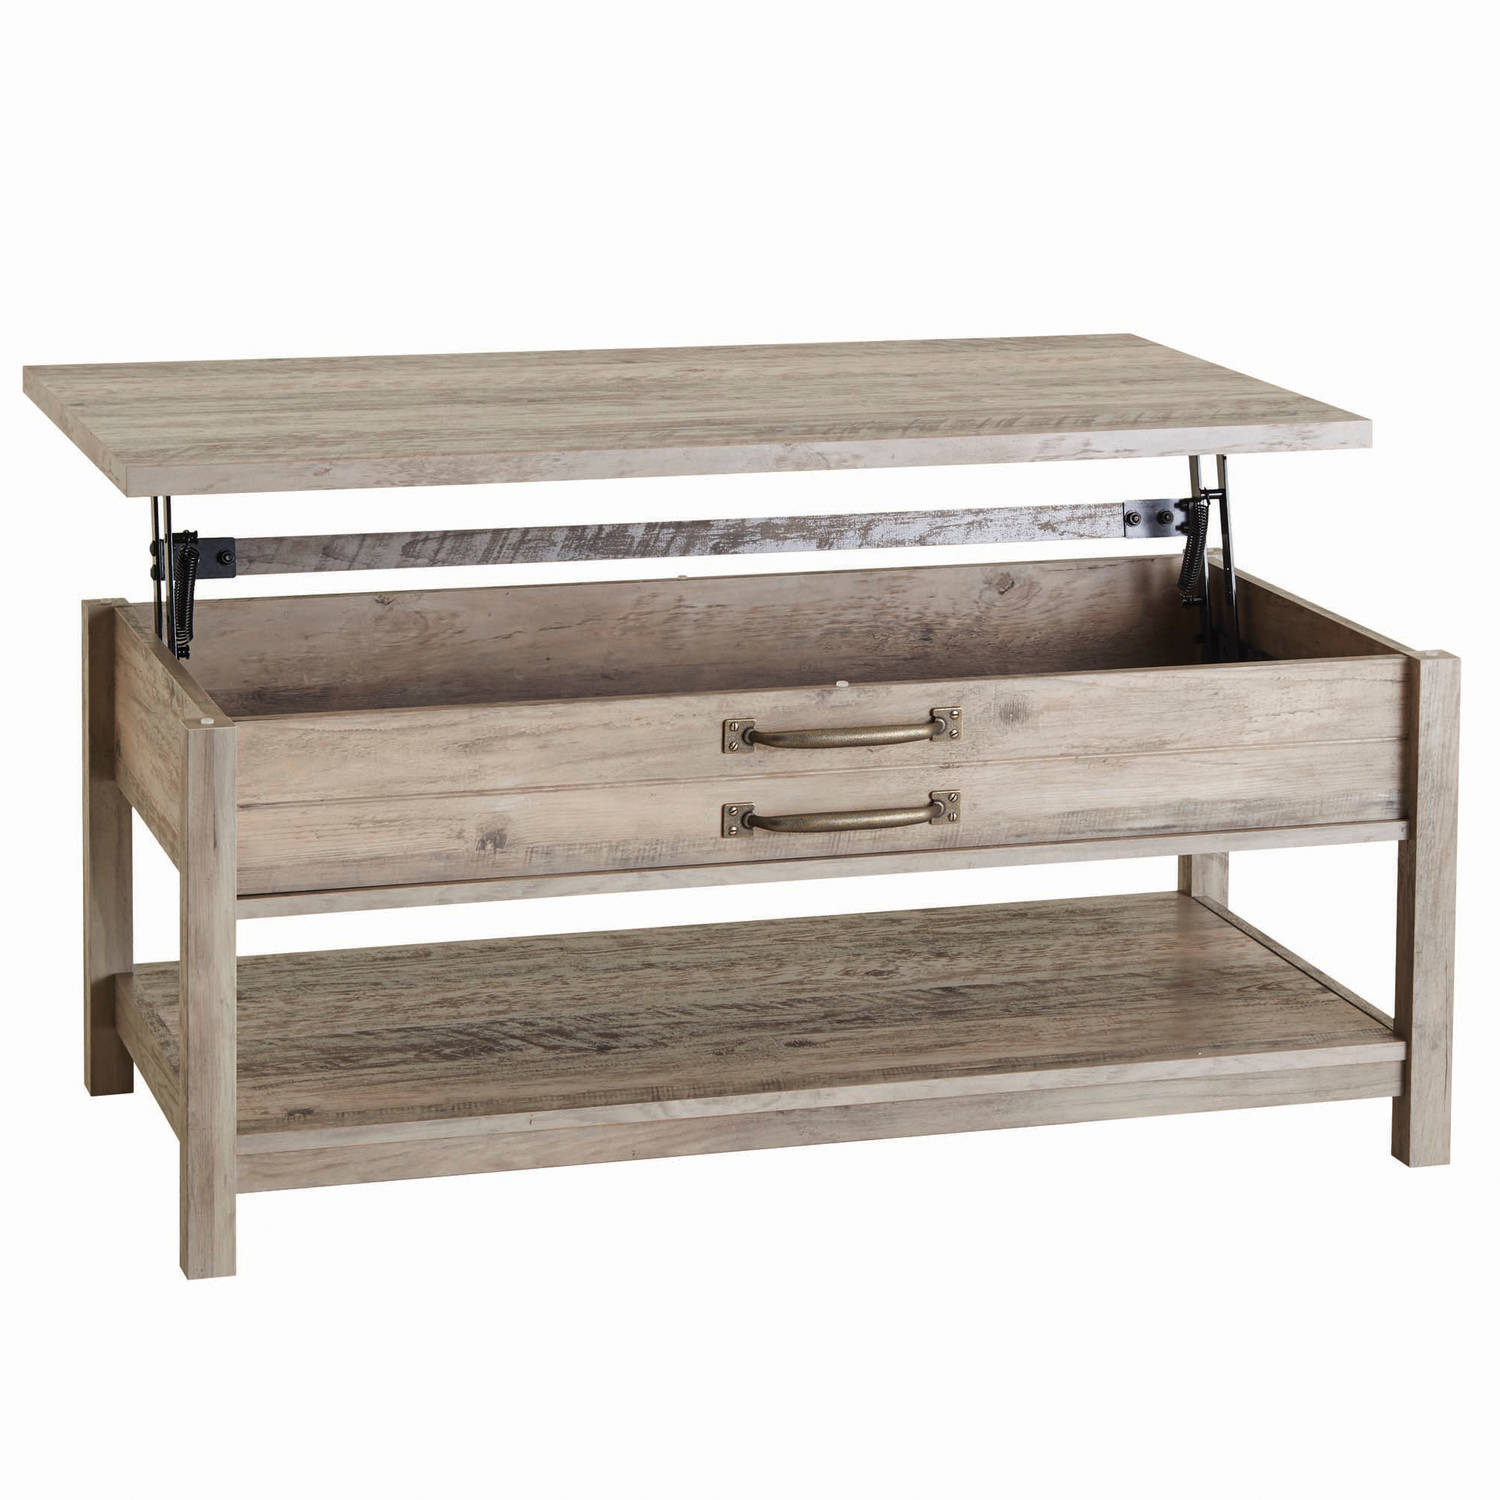 Better Homes & Gardens Modern Farmhouse Lift-Top Coffee Table, Rustic Gray Finish by Sauder Woodworking